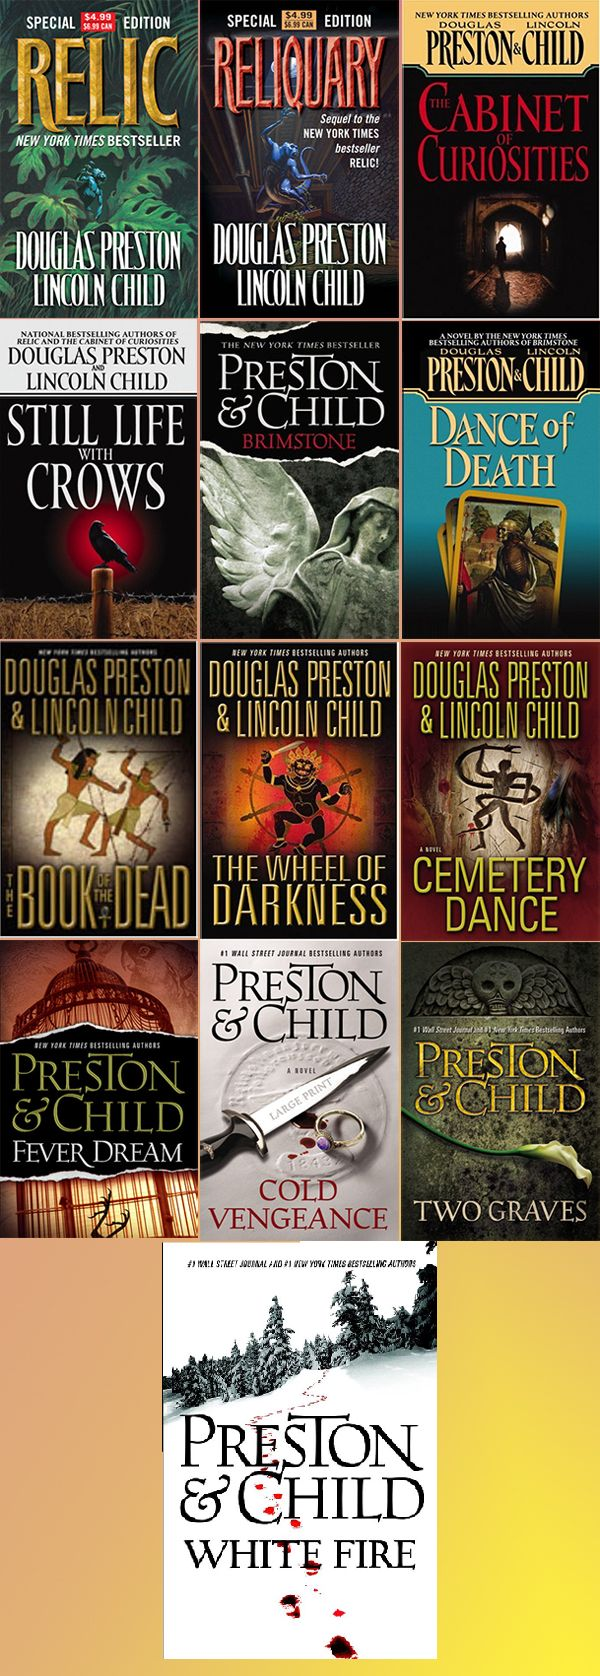 Pendergast Novels In Order by Douglas Preston & Lincoln Child